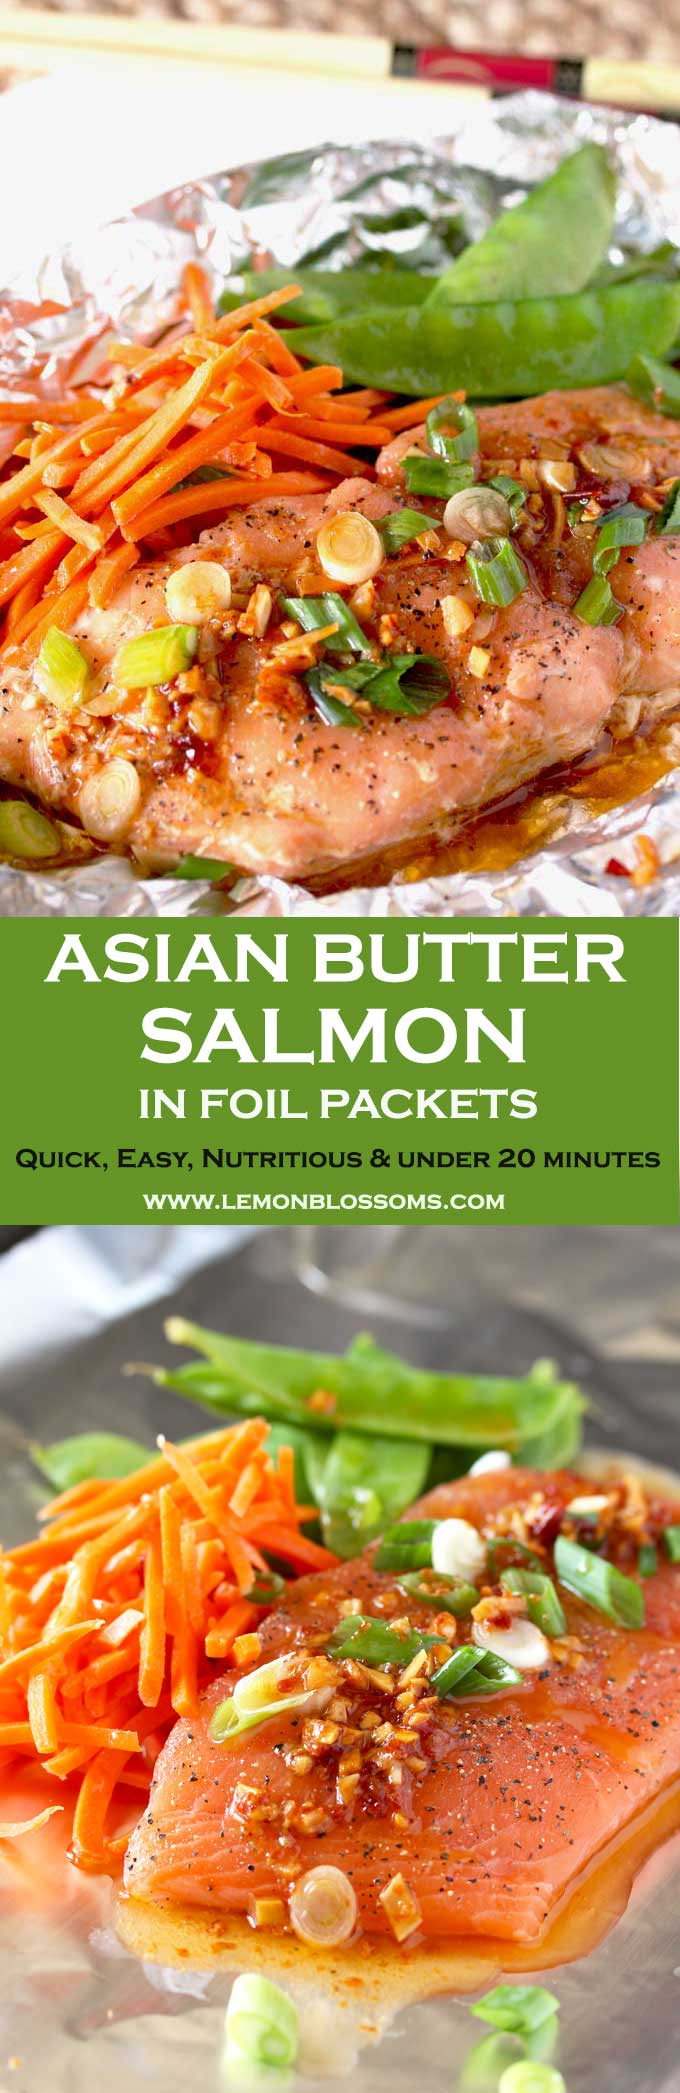 This Asian Butter Salmon is packed with Asian flavors! Light, easy, nutritious and ready in under 20 minutes! Simple ingredients and little clean up!